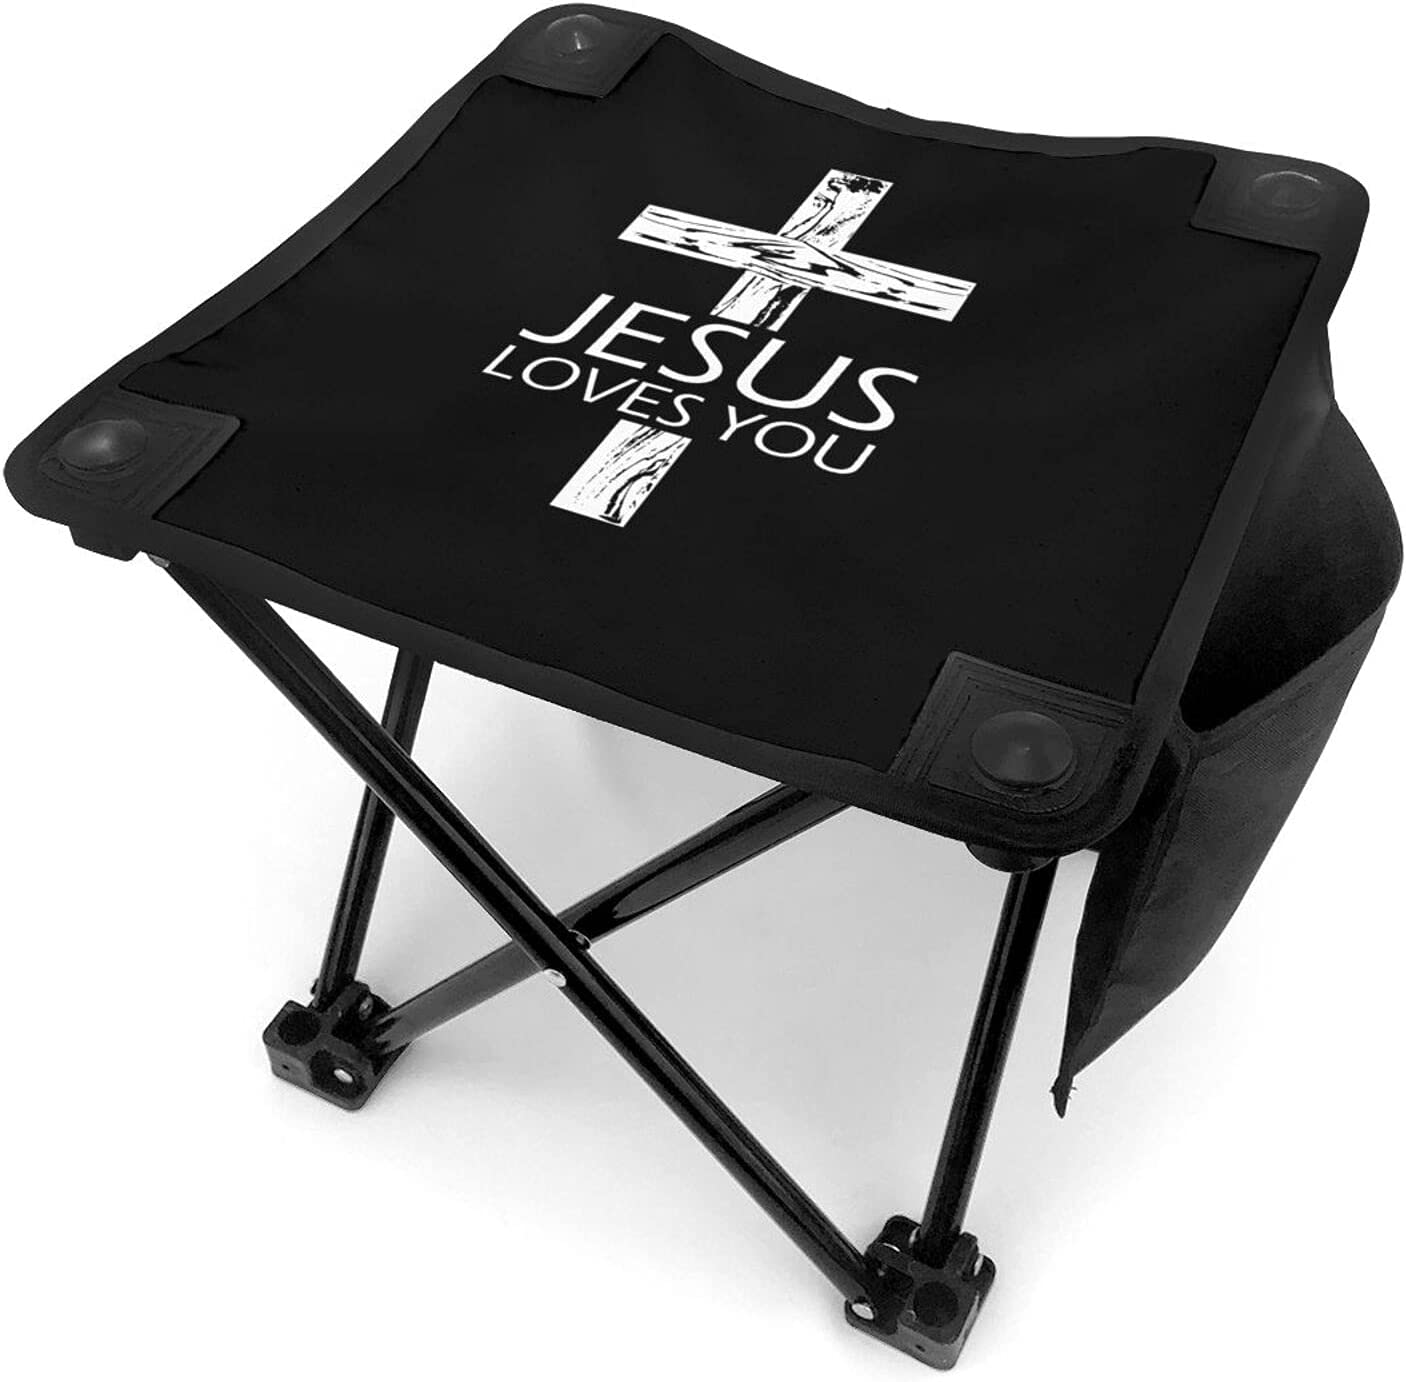 Jesus Loves Brand new You Camping Stool Mini Portable Stools Fo Ultralight Max 61% OFF